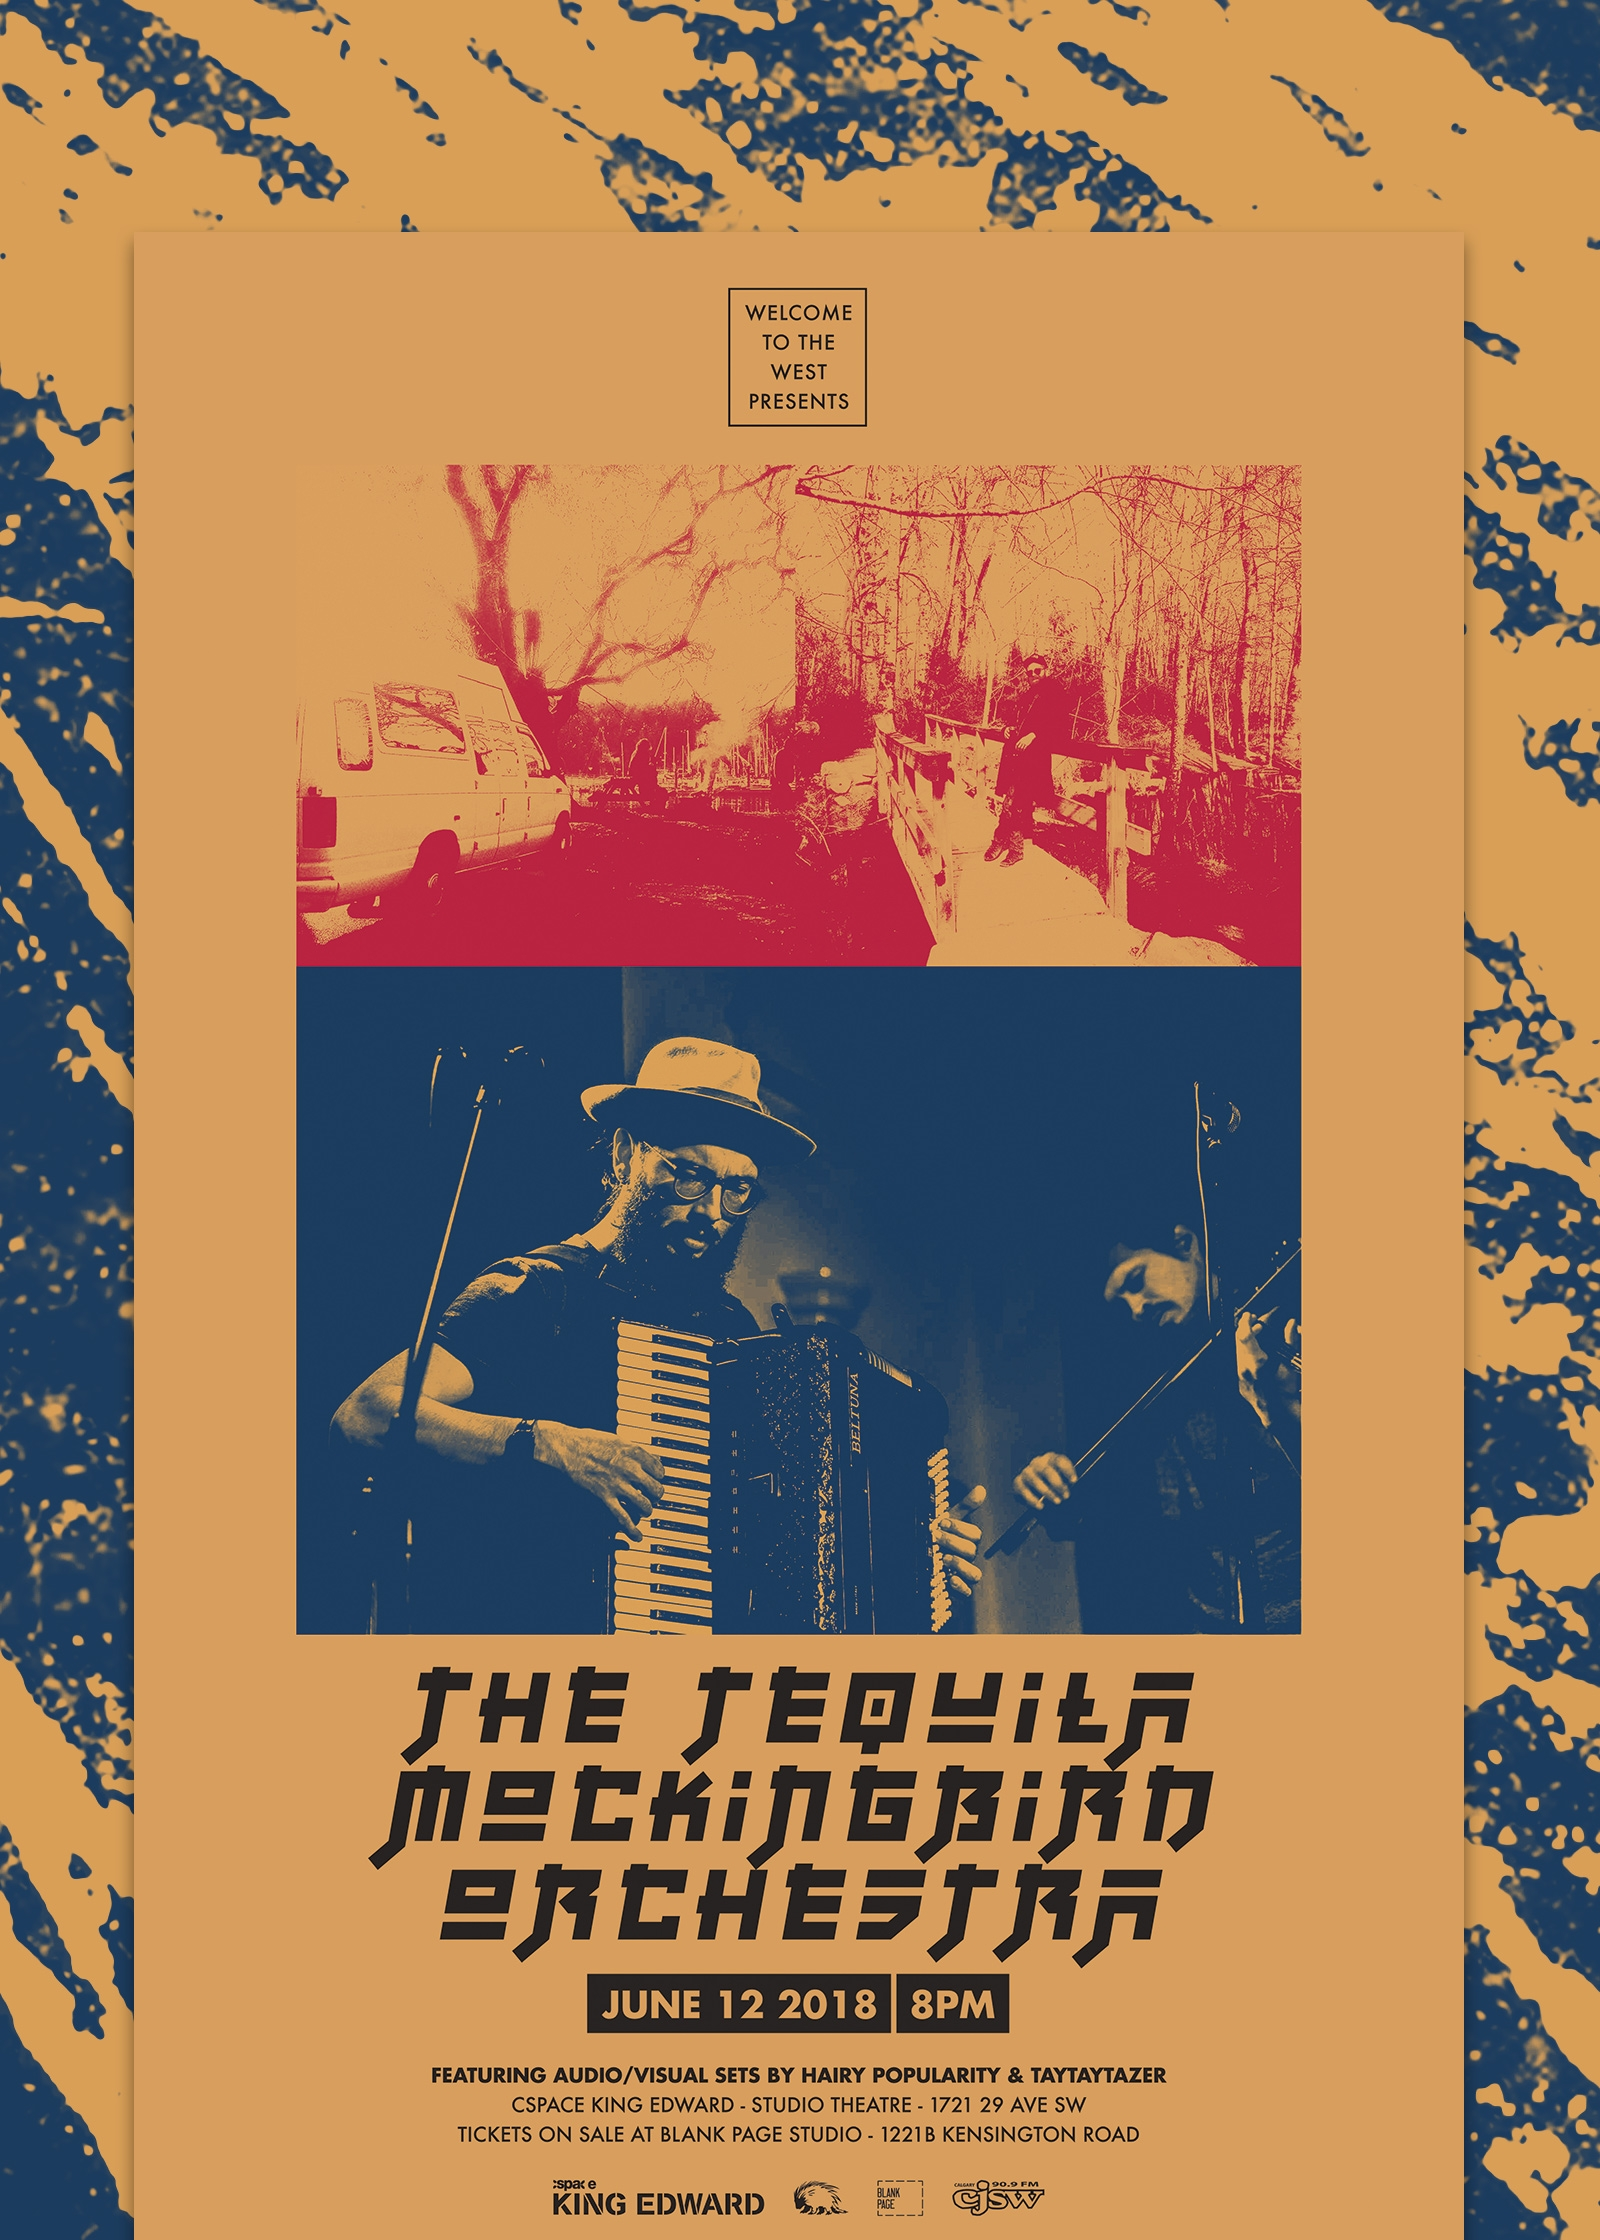 Tequila Mockingbird Orchestra Poster